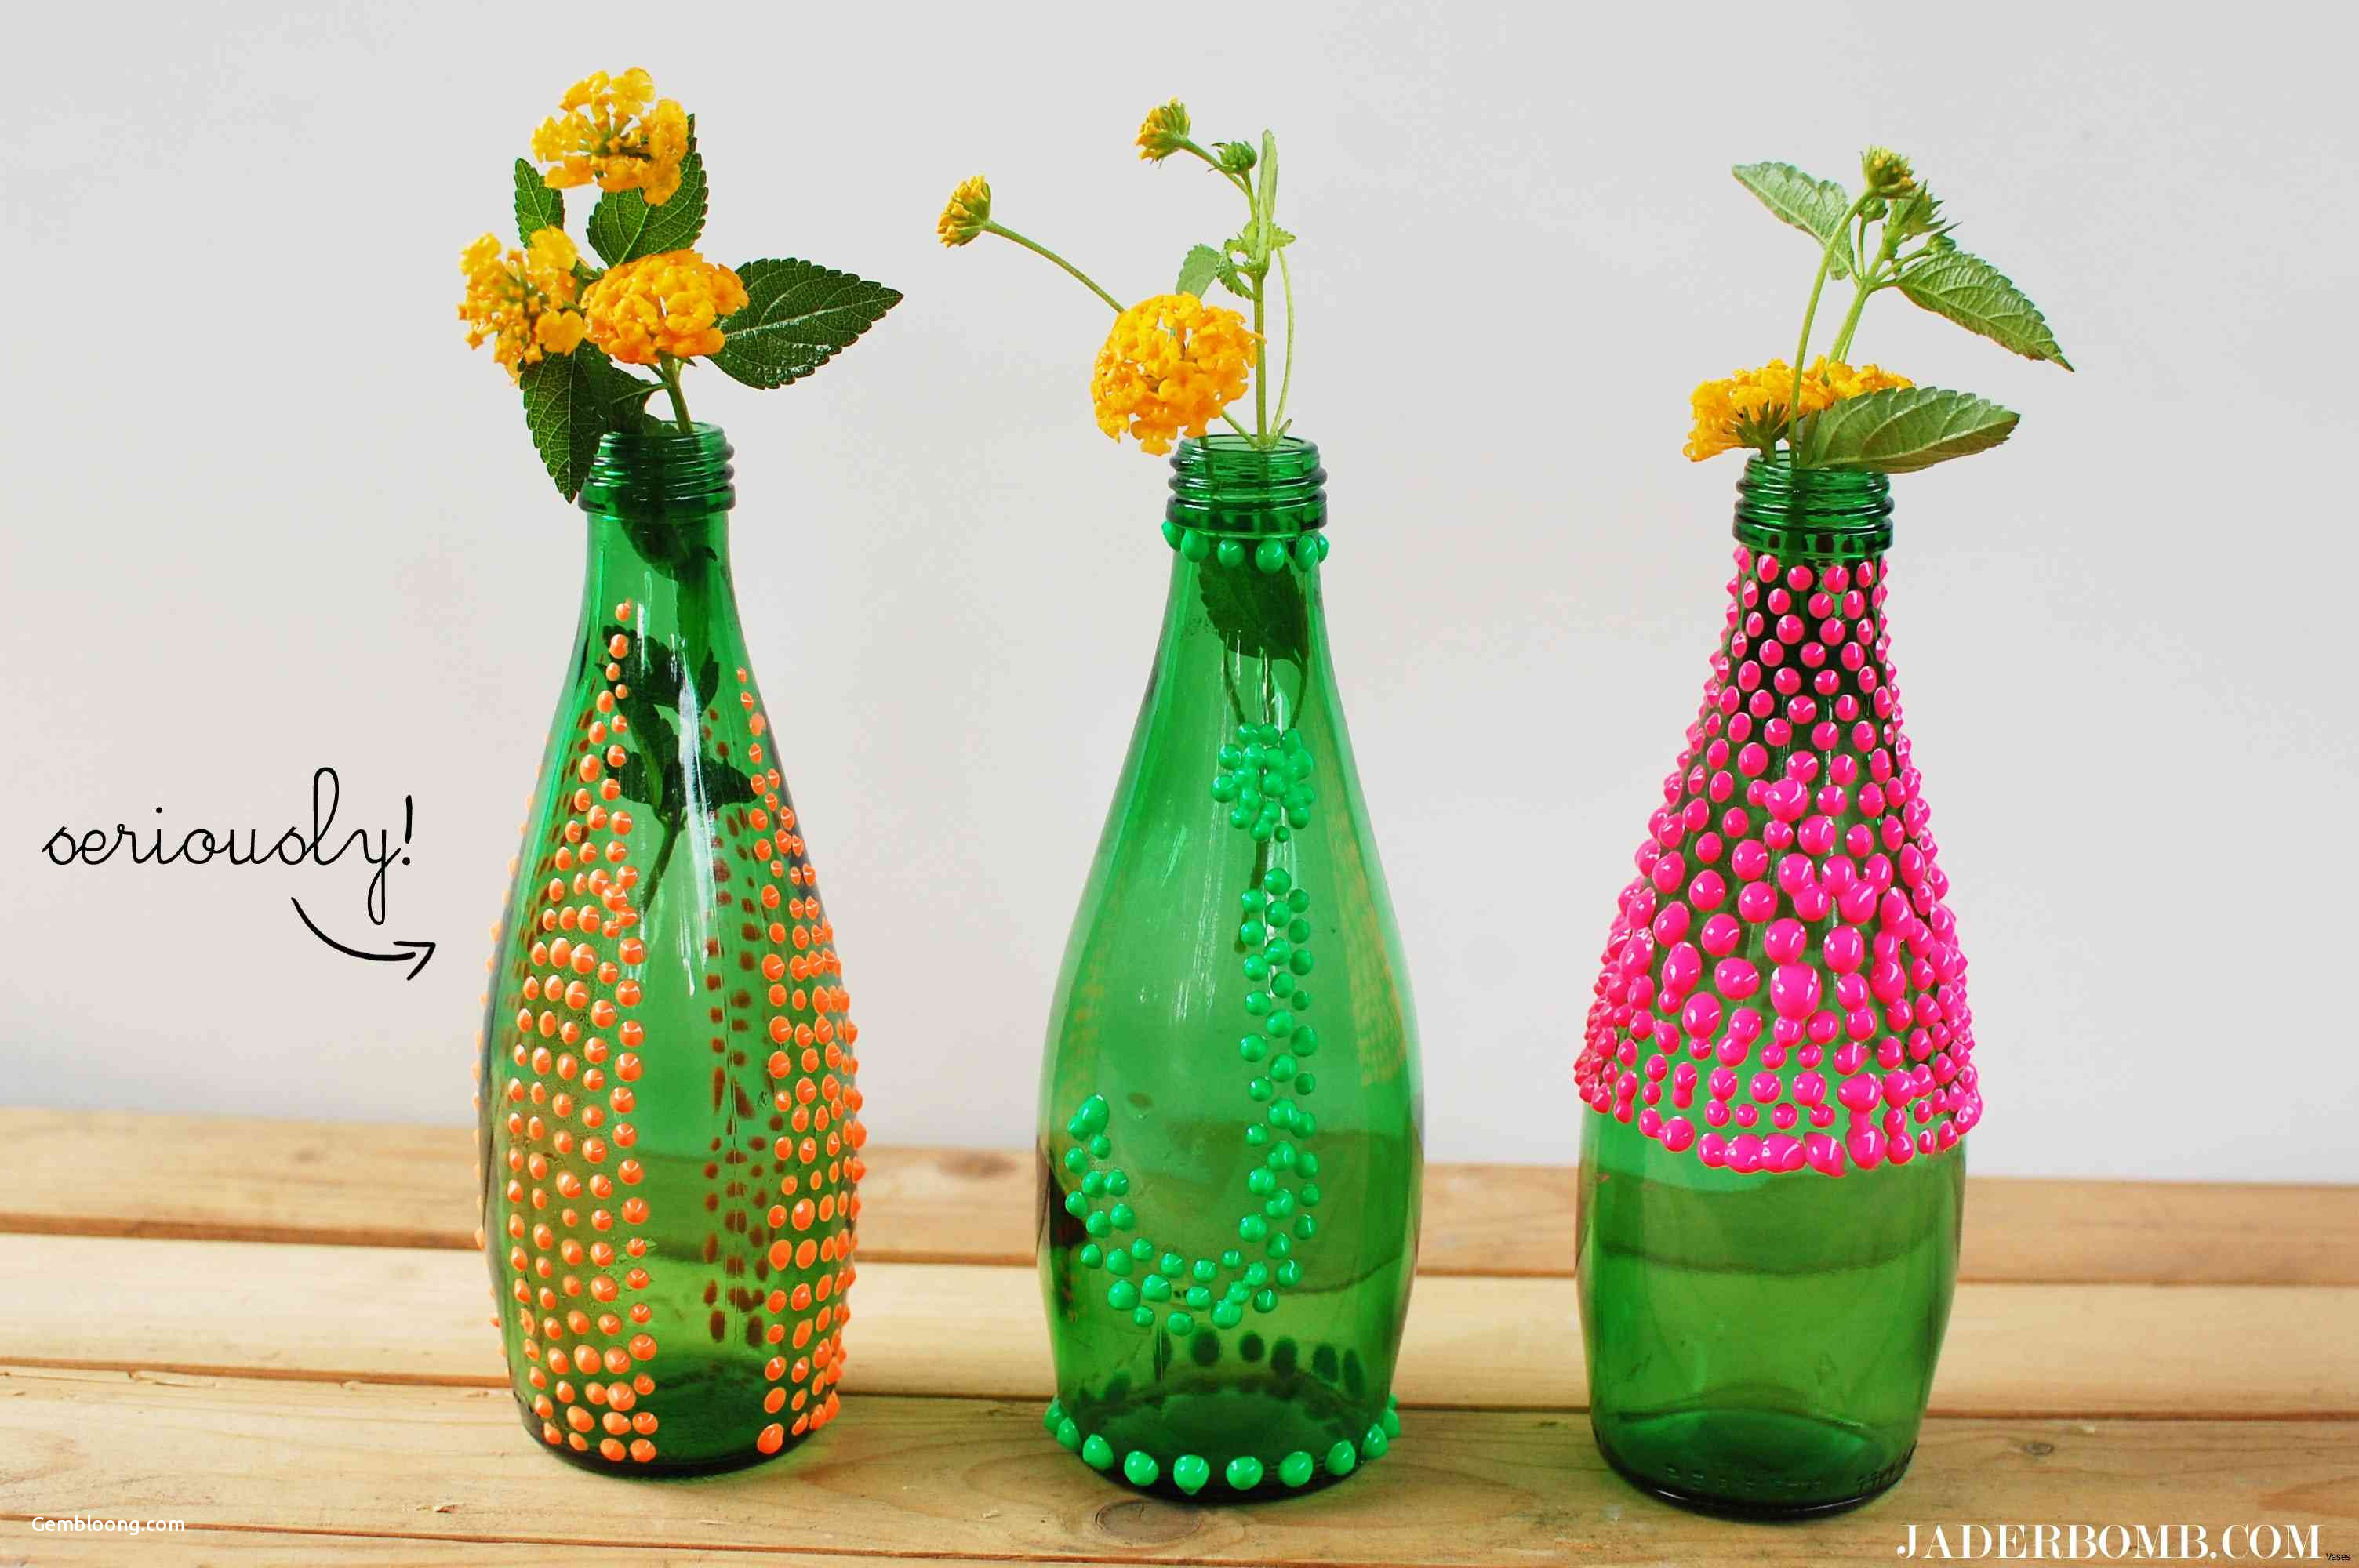 vases for sale of how much is food coloring can paint fresh h vases paint vase i 0d within how much is food coloring can paint fresh h vases paint vase i 0d with glue